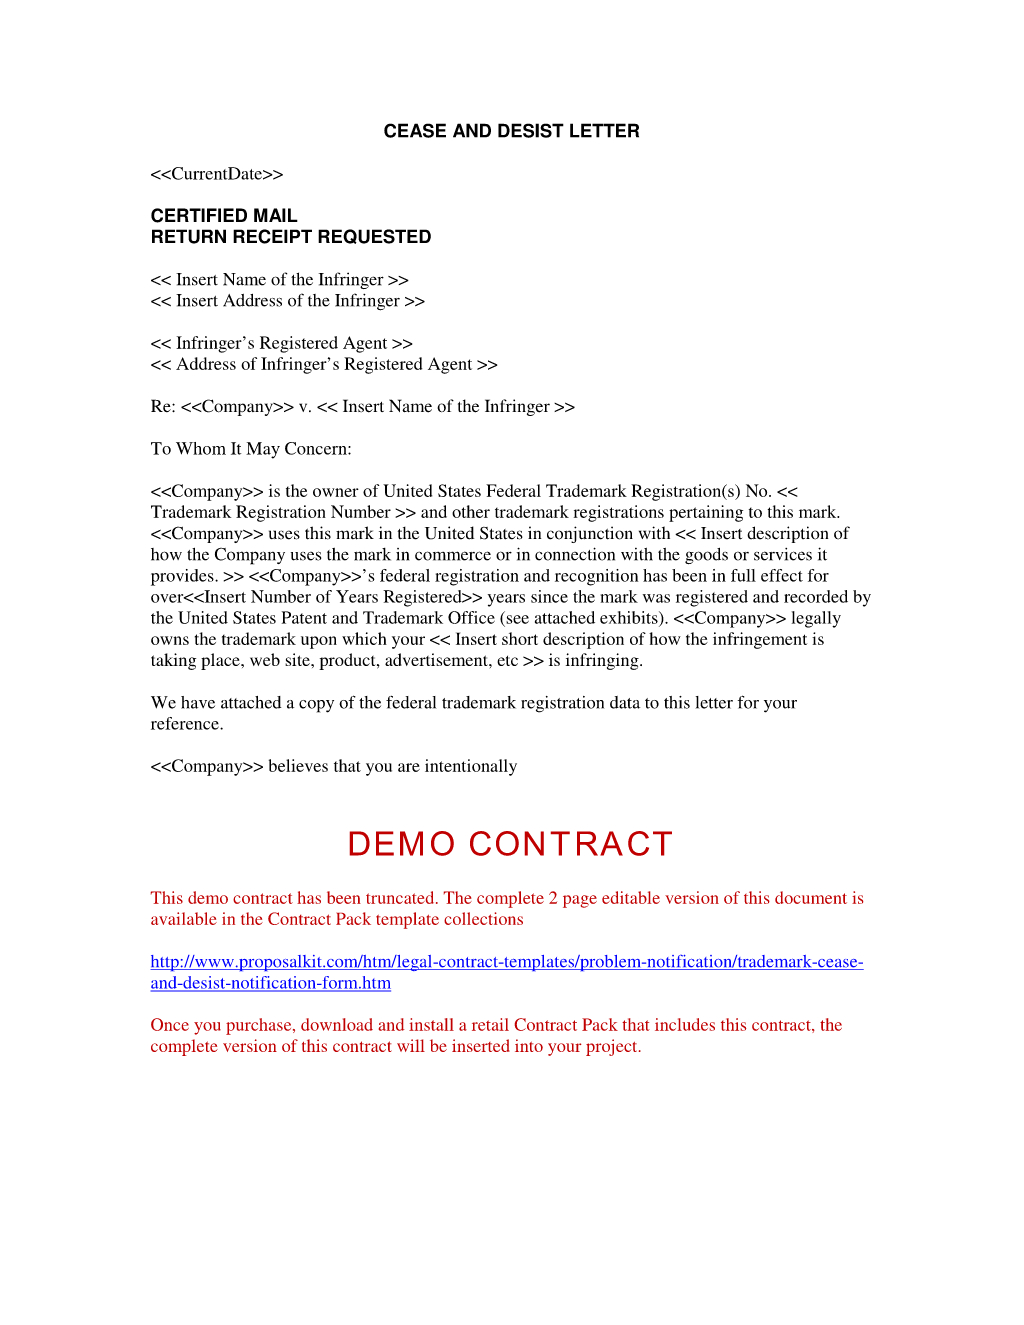 Cease and Desist Letter Breach Of Contract Template - Sample Cease and Desist Letter to former Employee Ideas